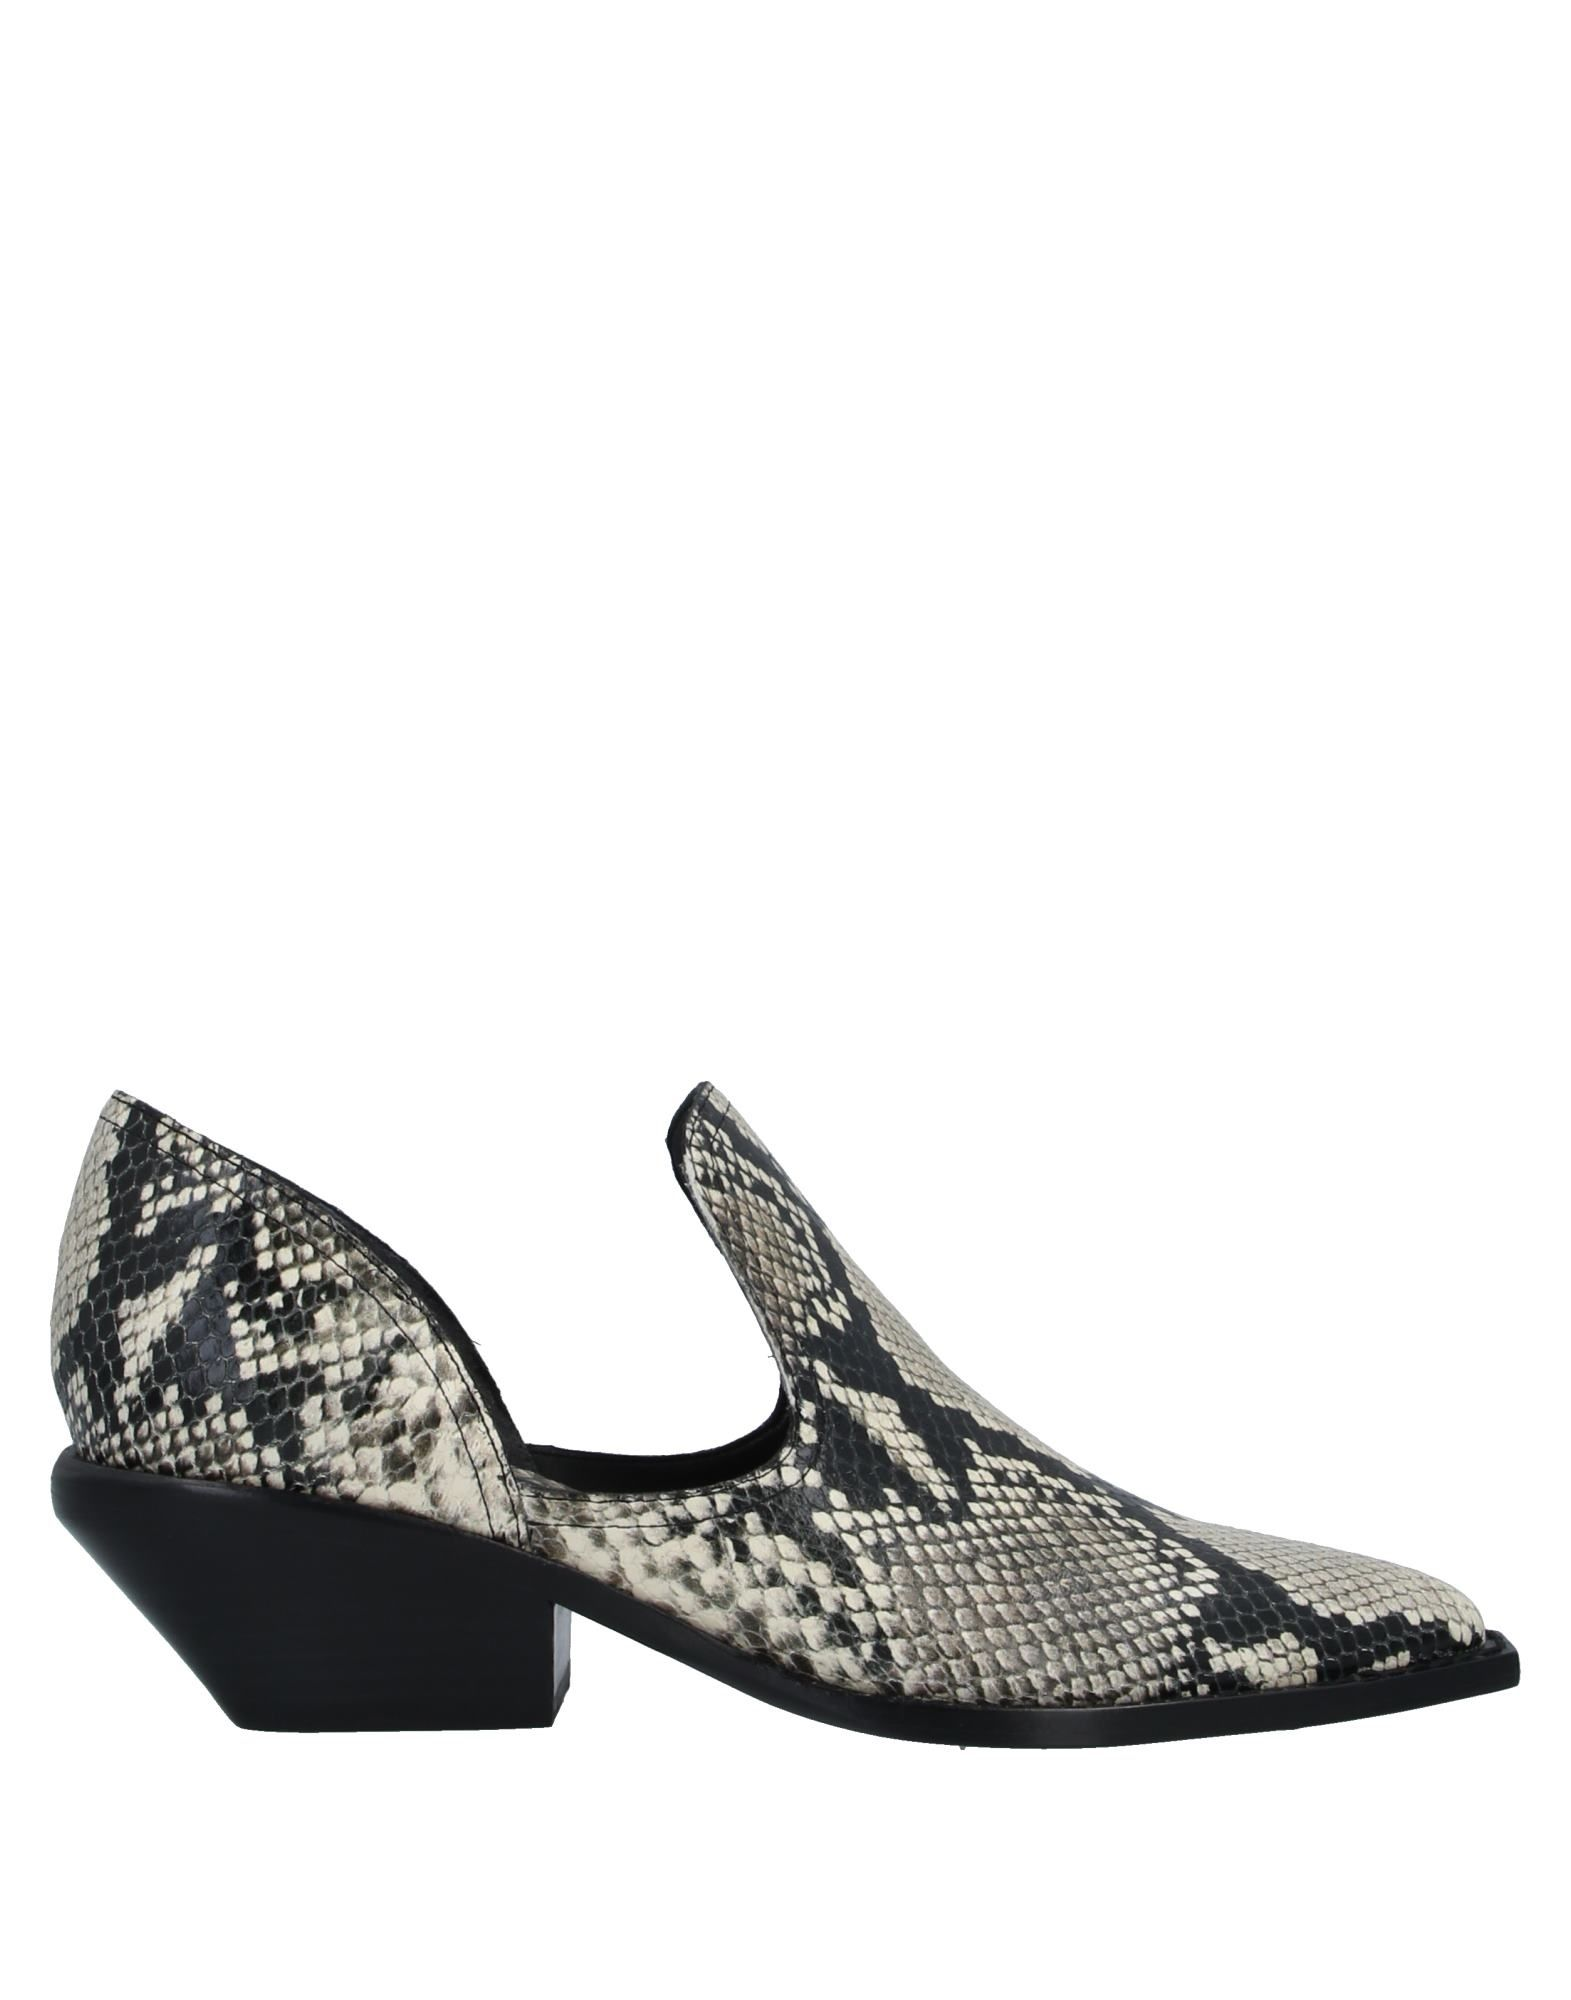 SIGERSON MORRISON Loafers - Item 11850783